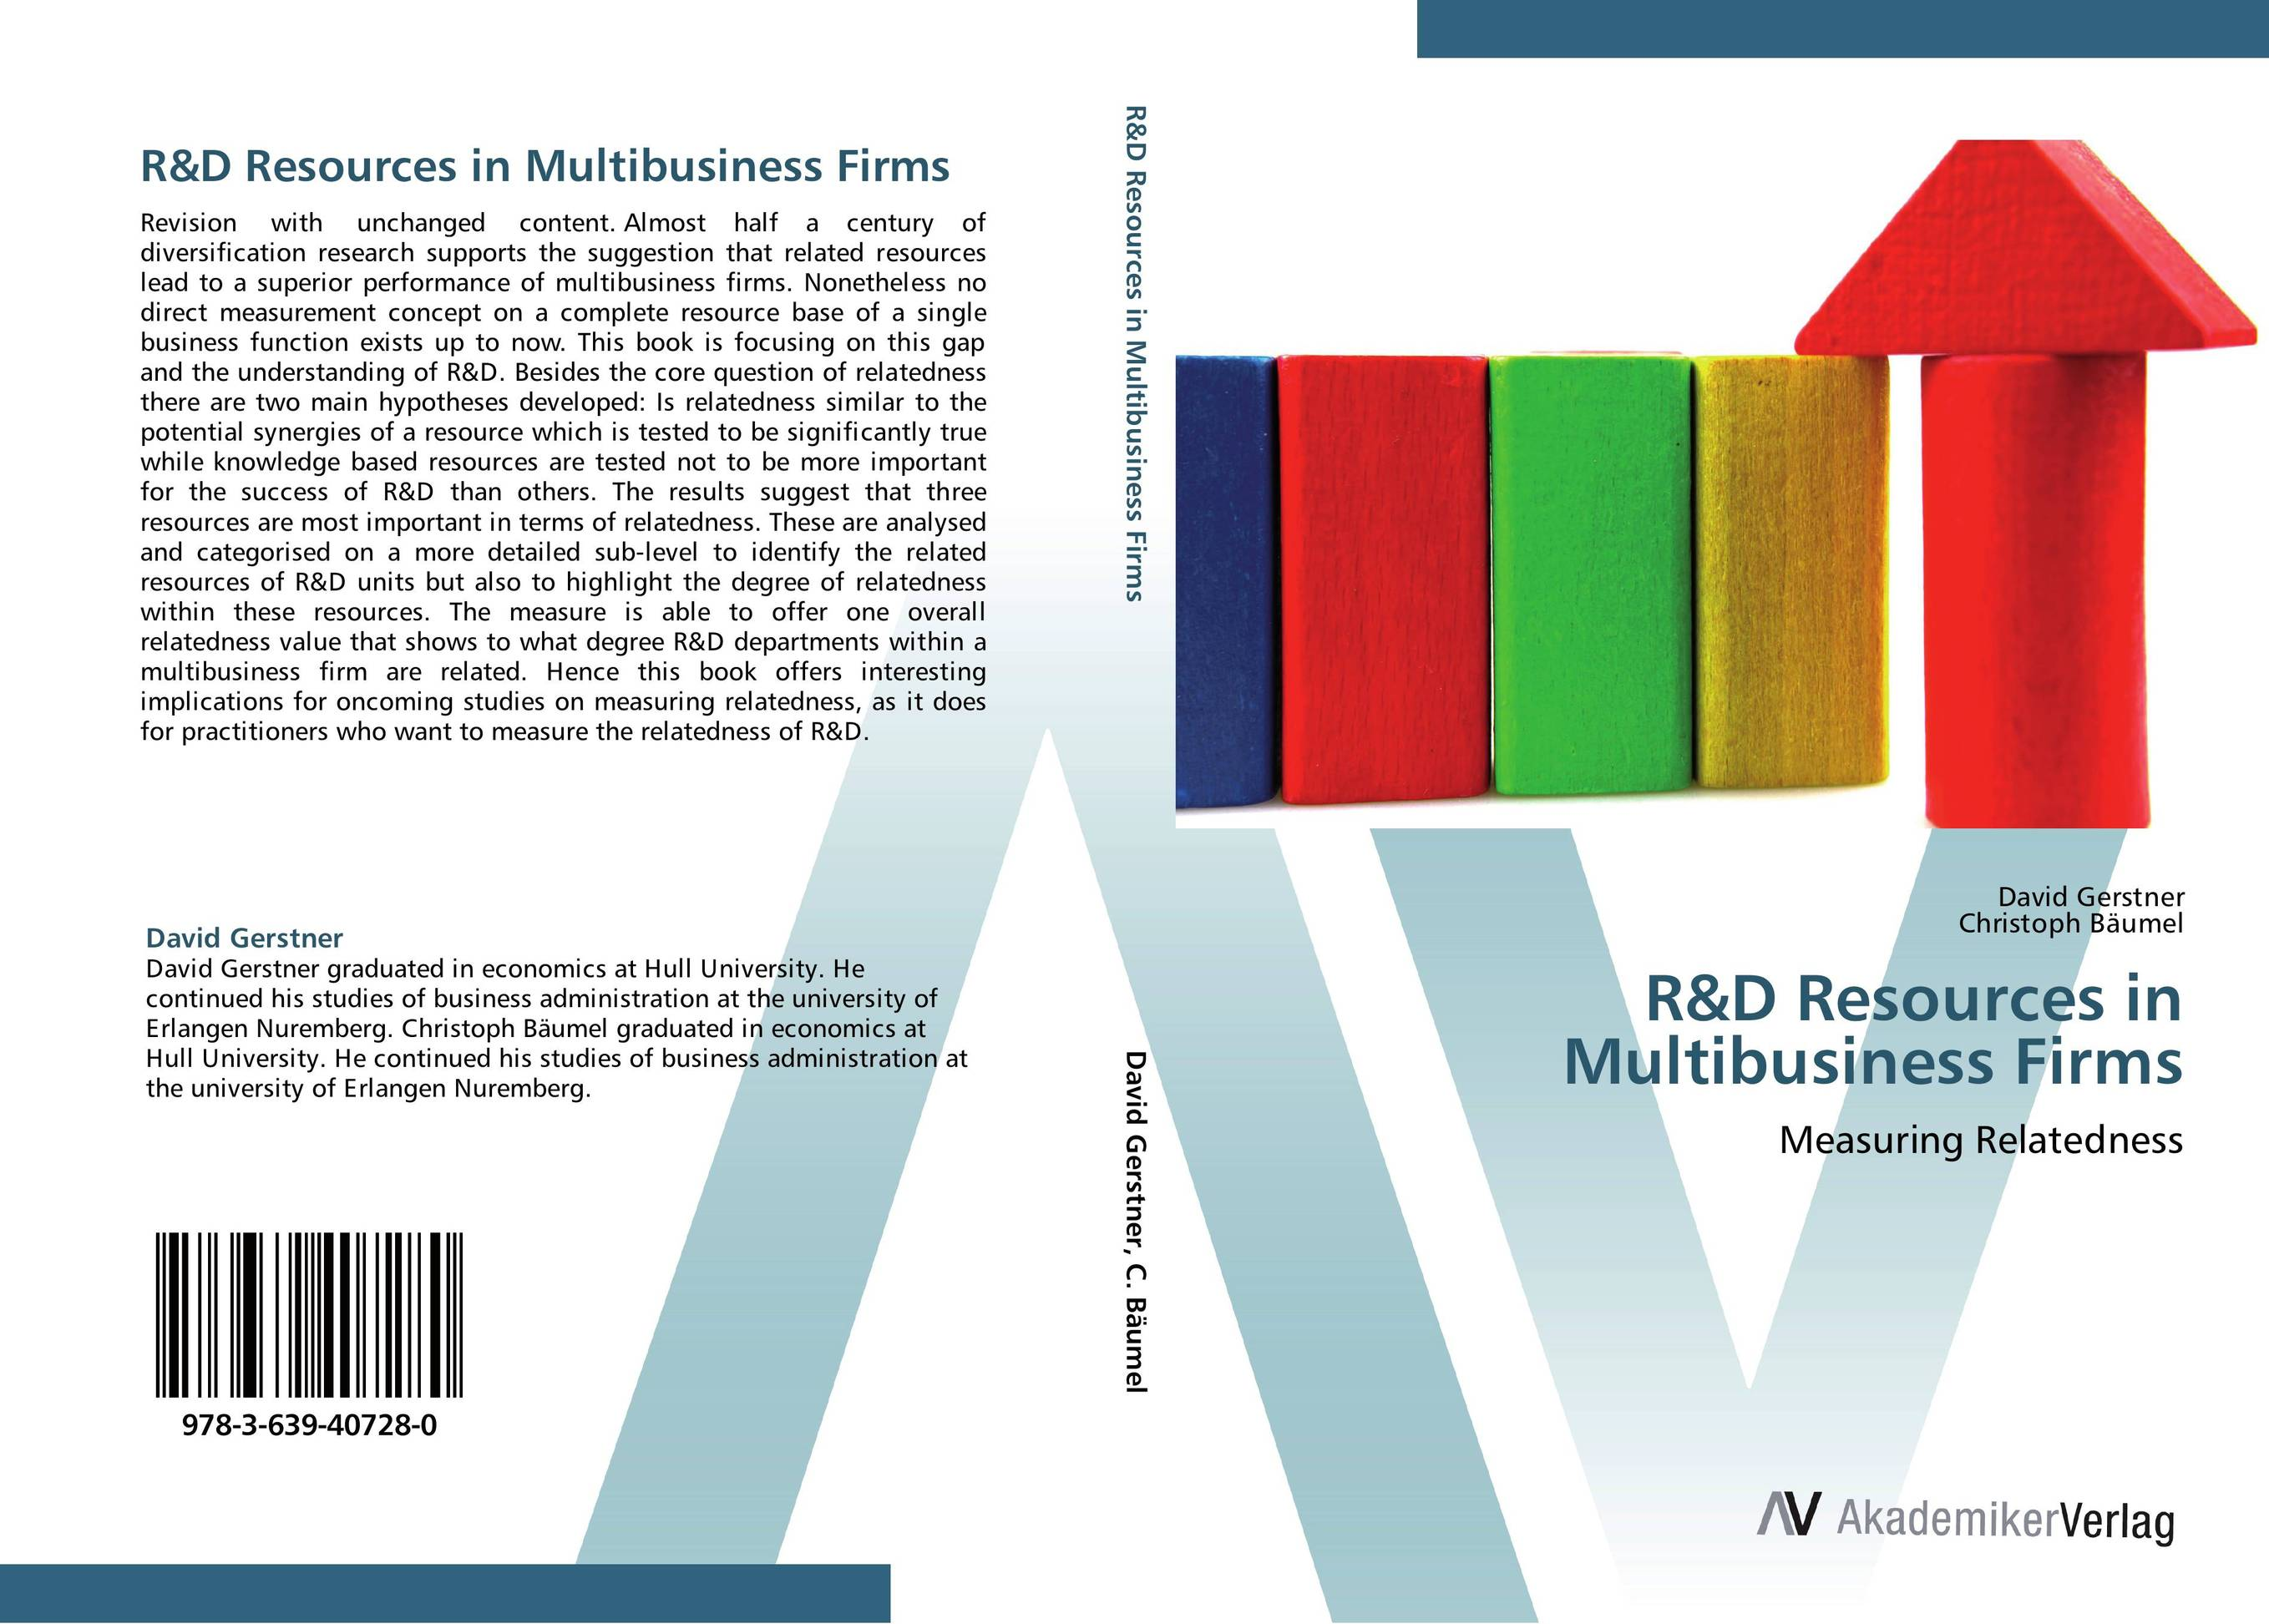 R&D Resources in Multibusiness Firms b p r d hell on earth volume 8 lake of fire